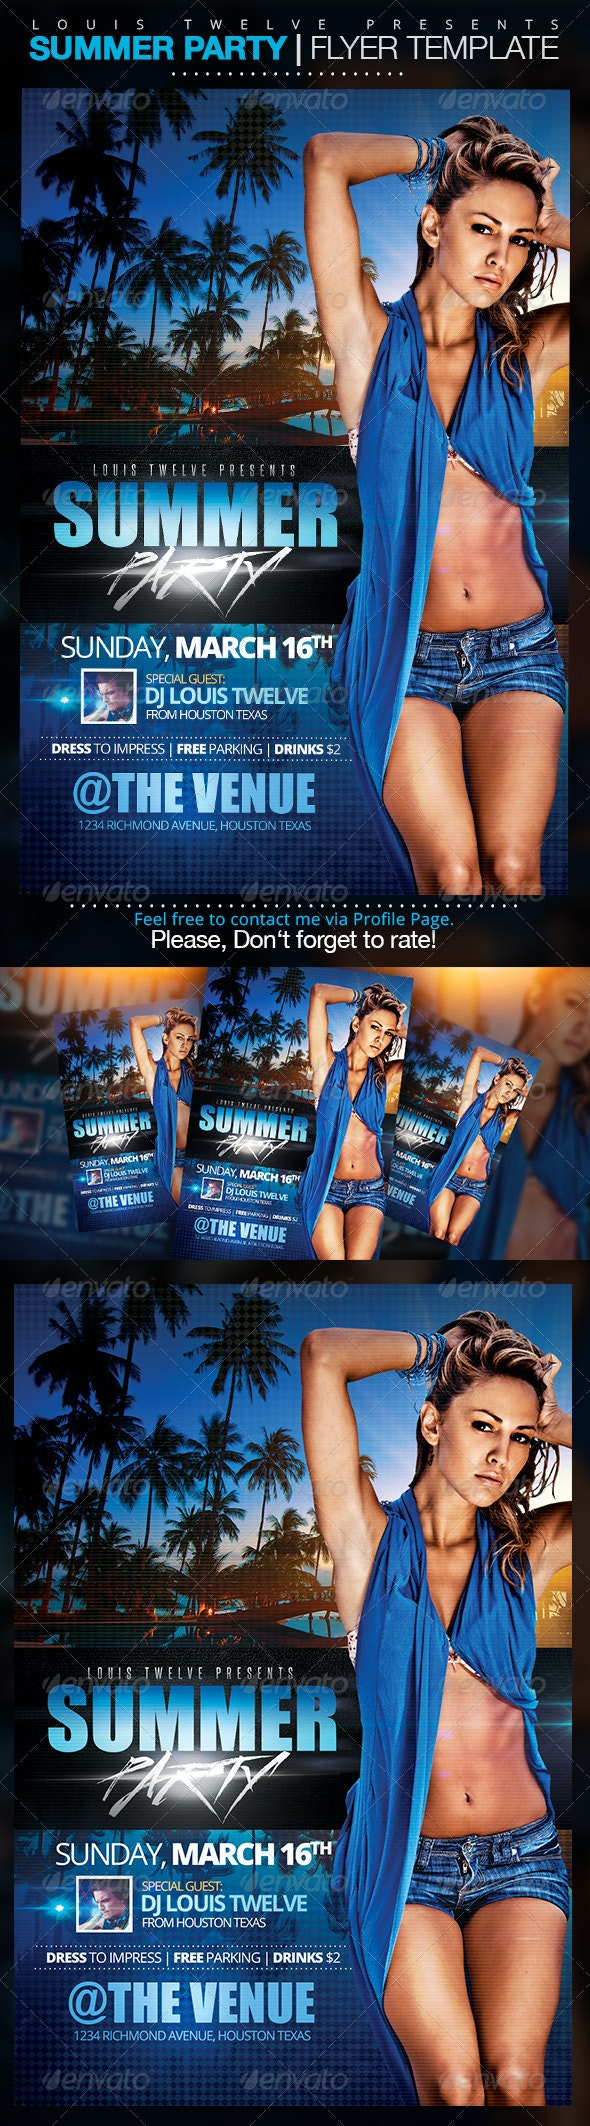 Summer Party | Flyer Template - Clubs & Parties Events